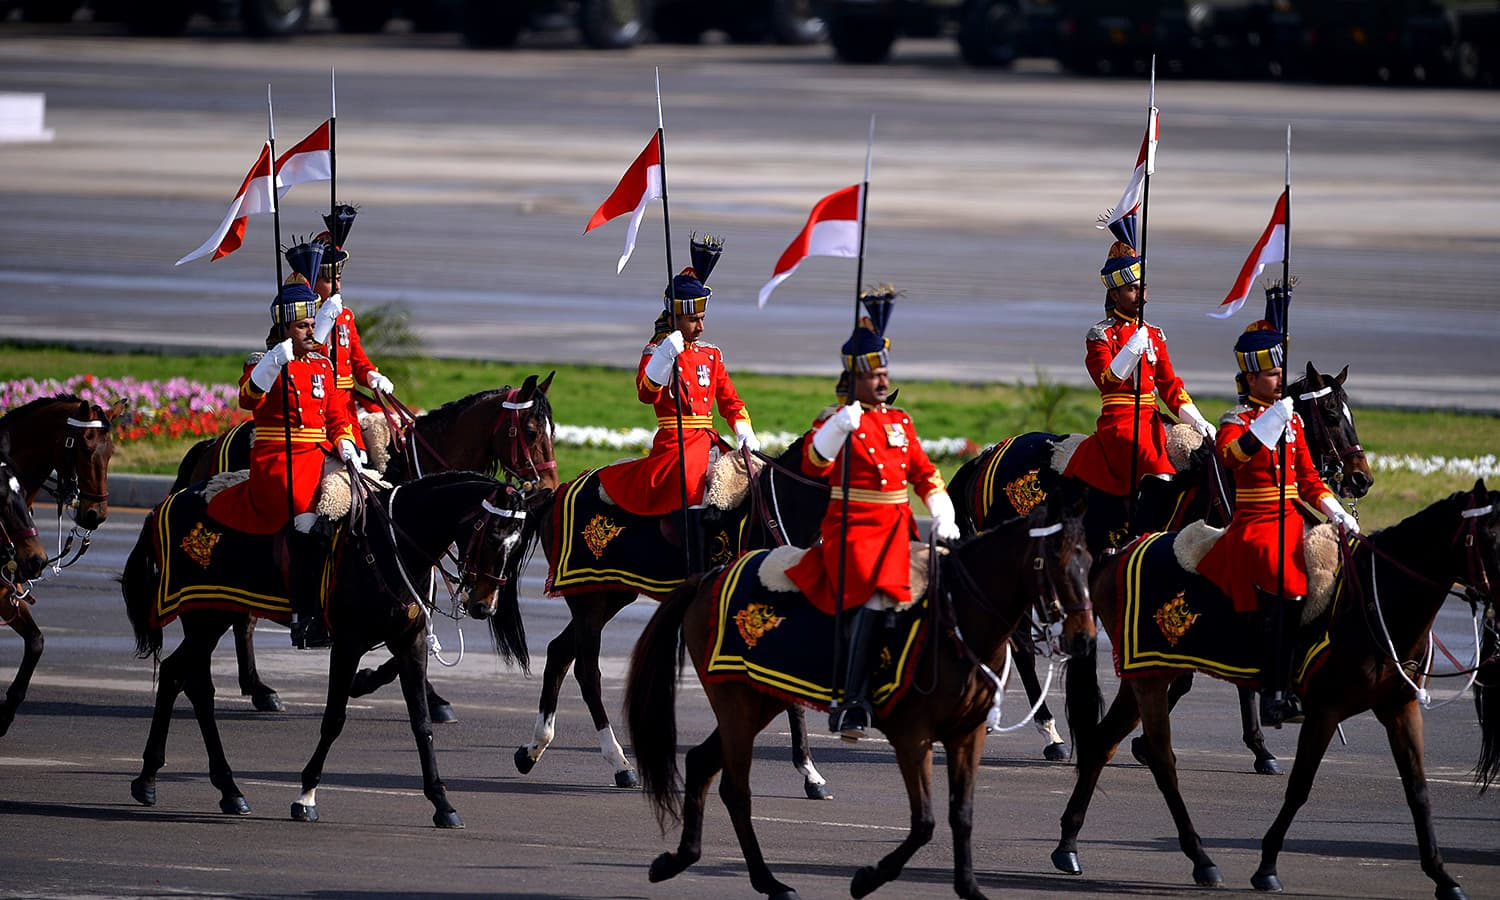 Special presidential guards march past on horseback during the Pakistan Day military parade. ─ AFP